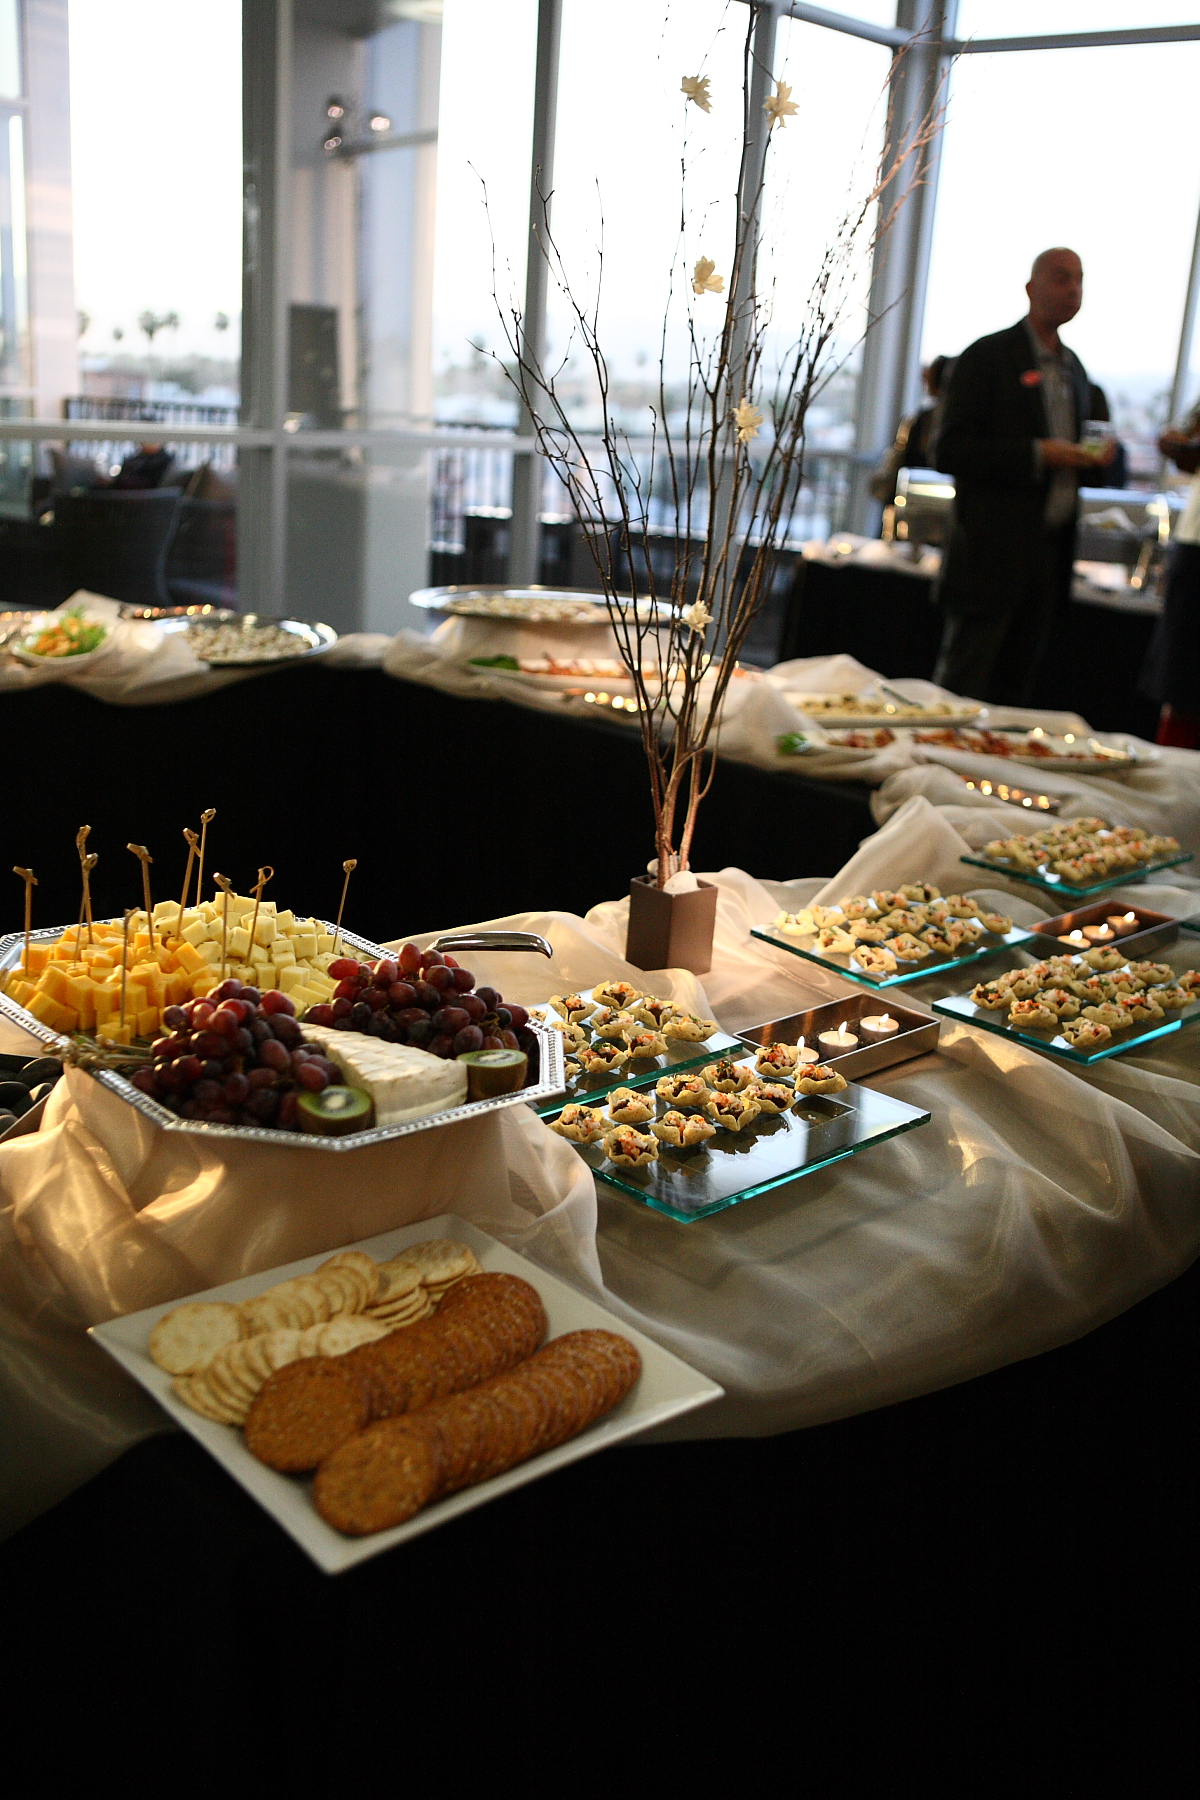 Tablescape of Buffet Items